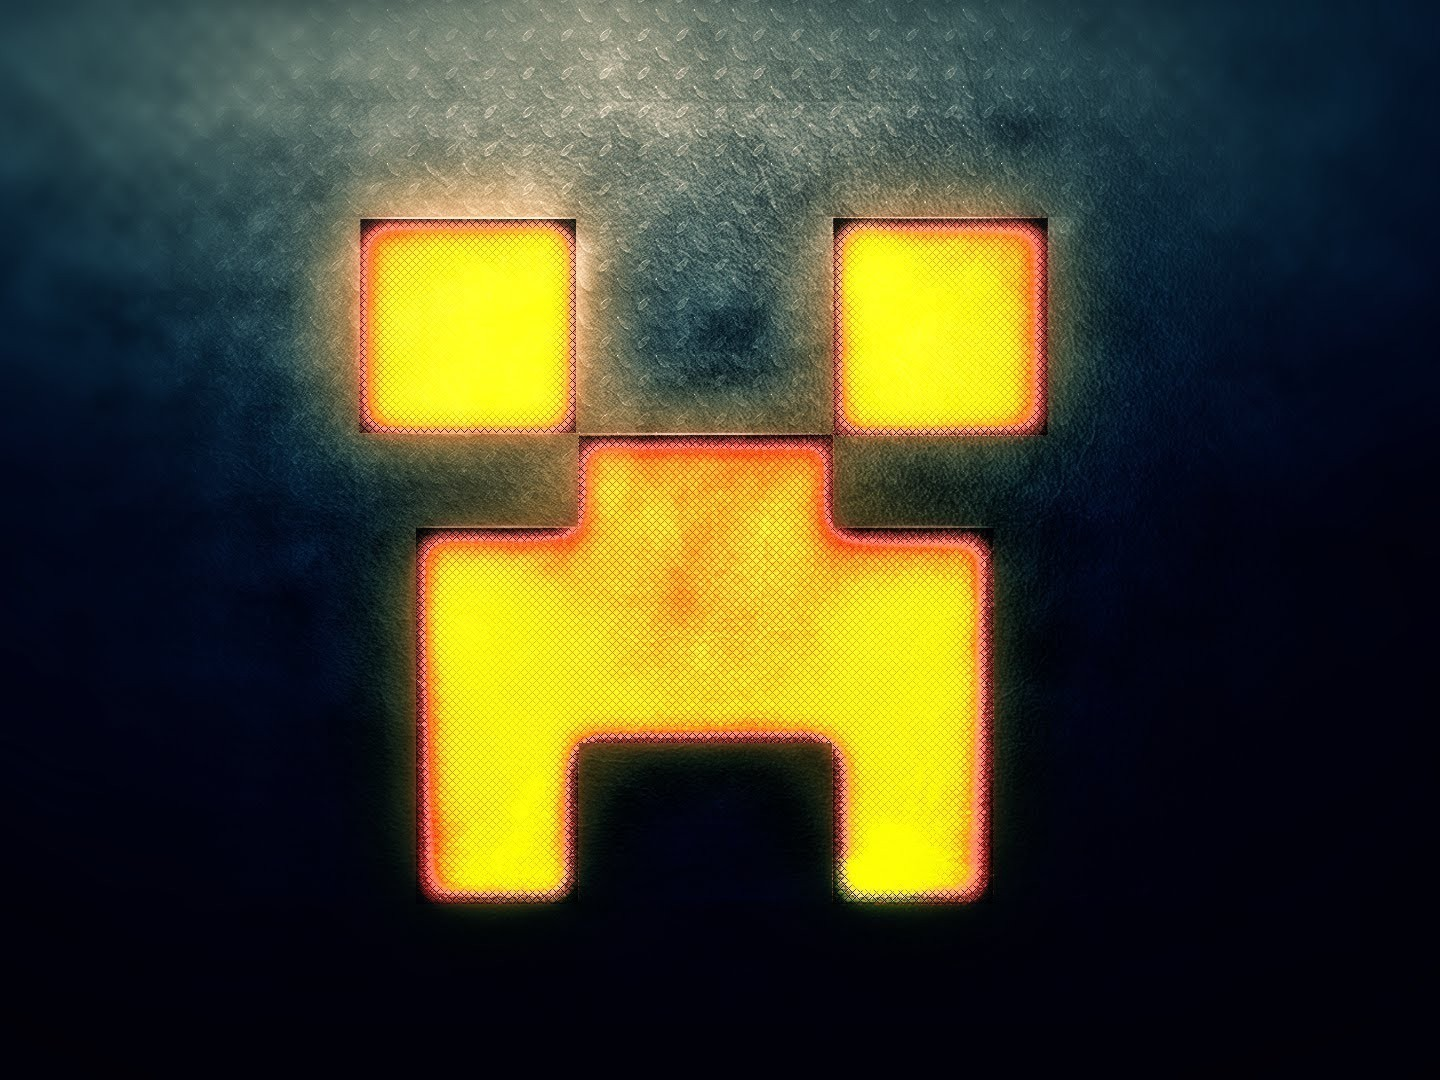 Minecraft creeper face wallpaper 1910 - Creeper iphone background ...